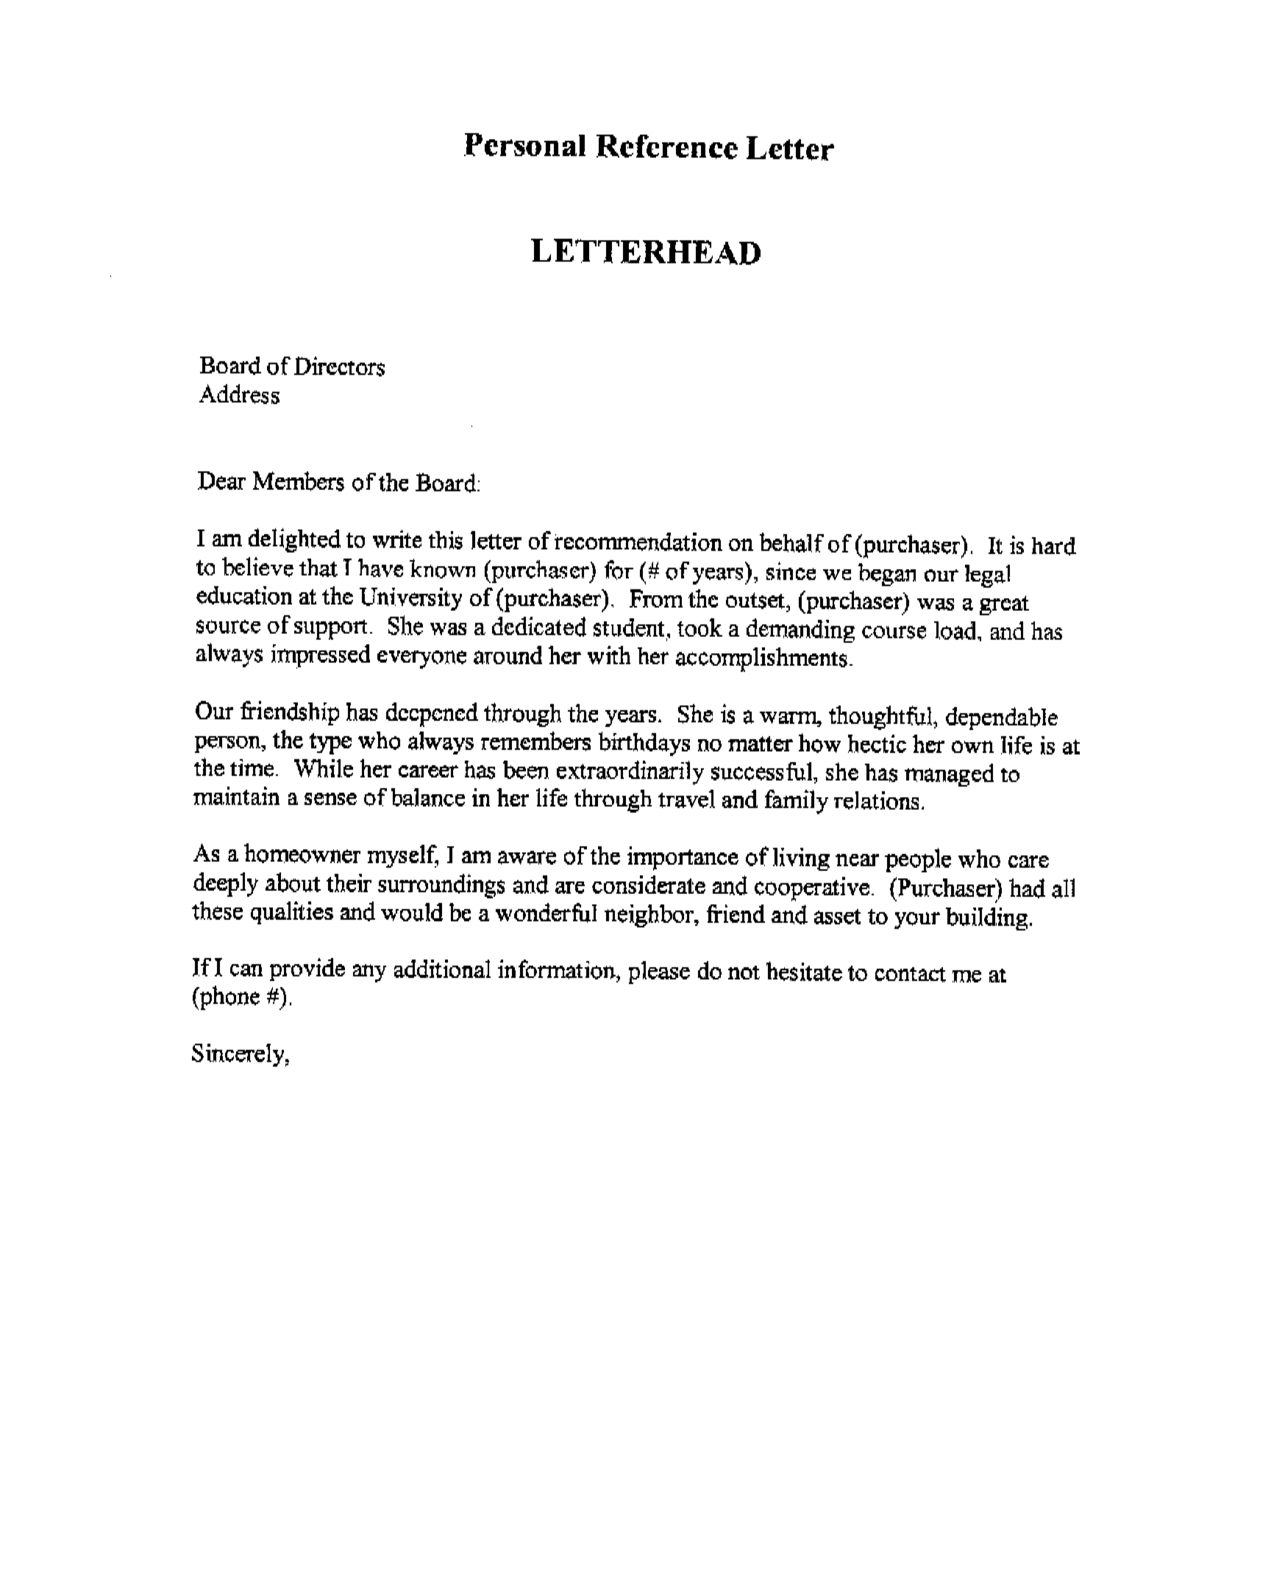 Legal Letter Of Recommendation Professional Recommendation Letter This Is An Example Of A